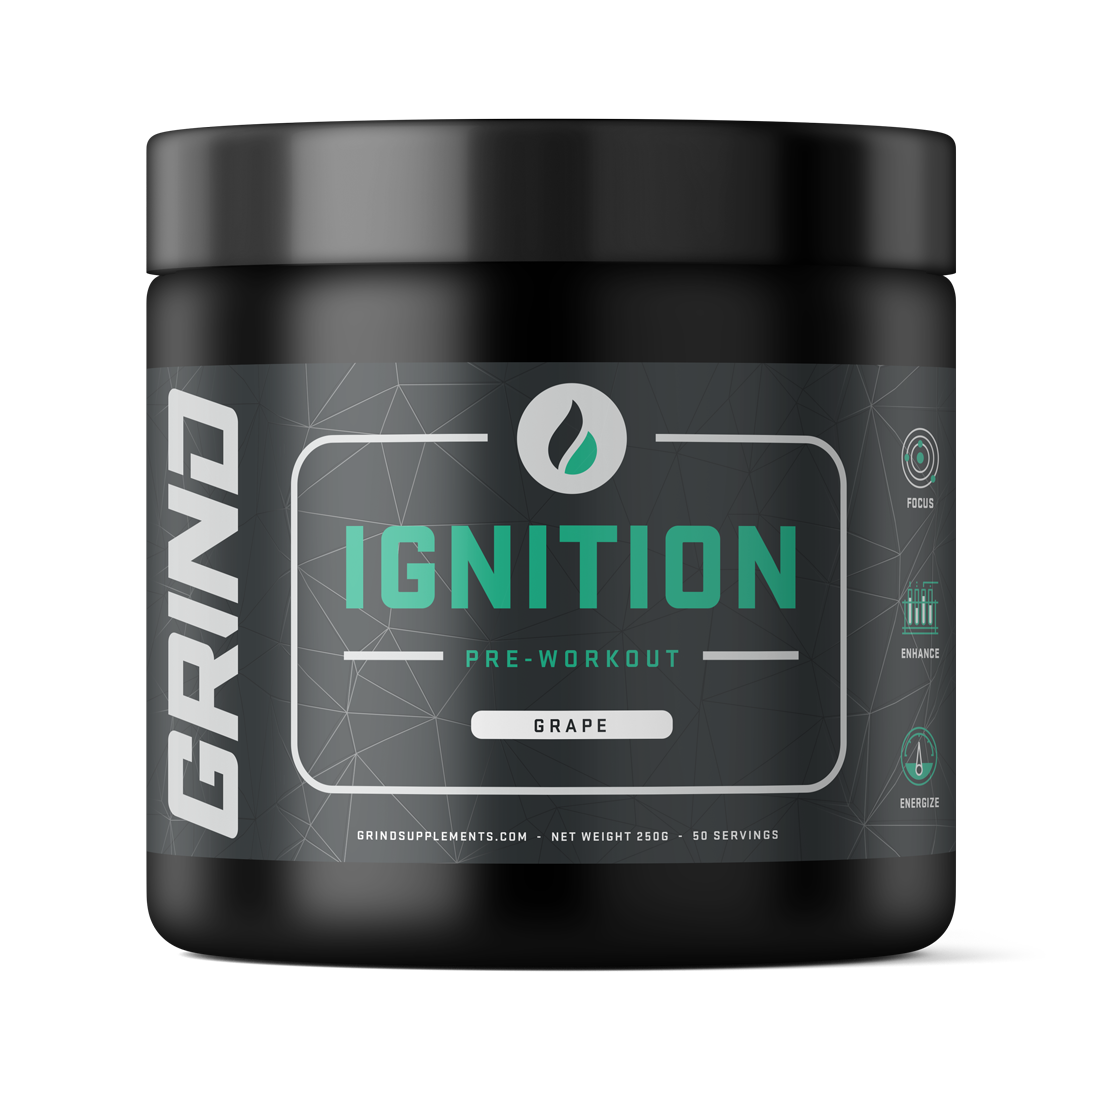 GRIND Ignition container